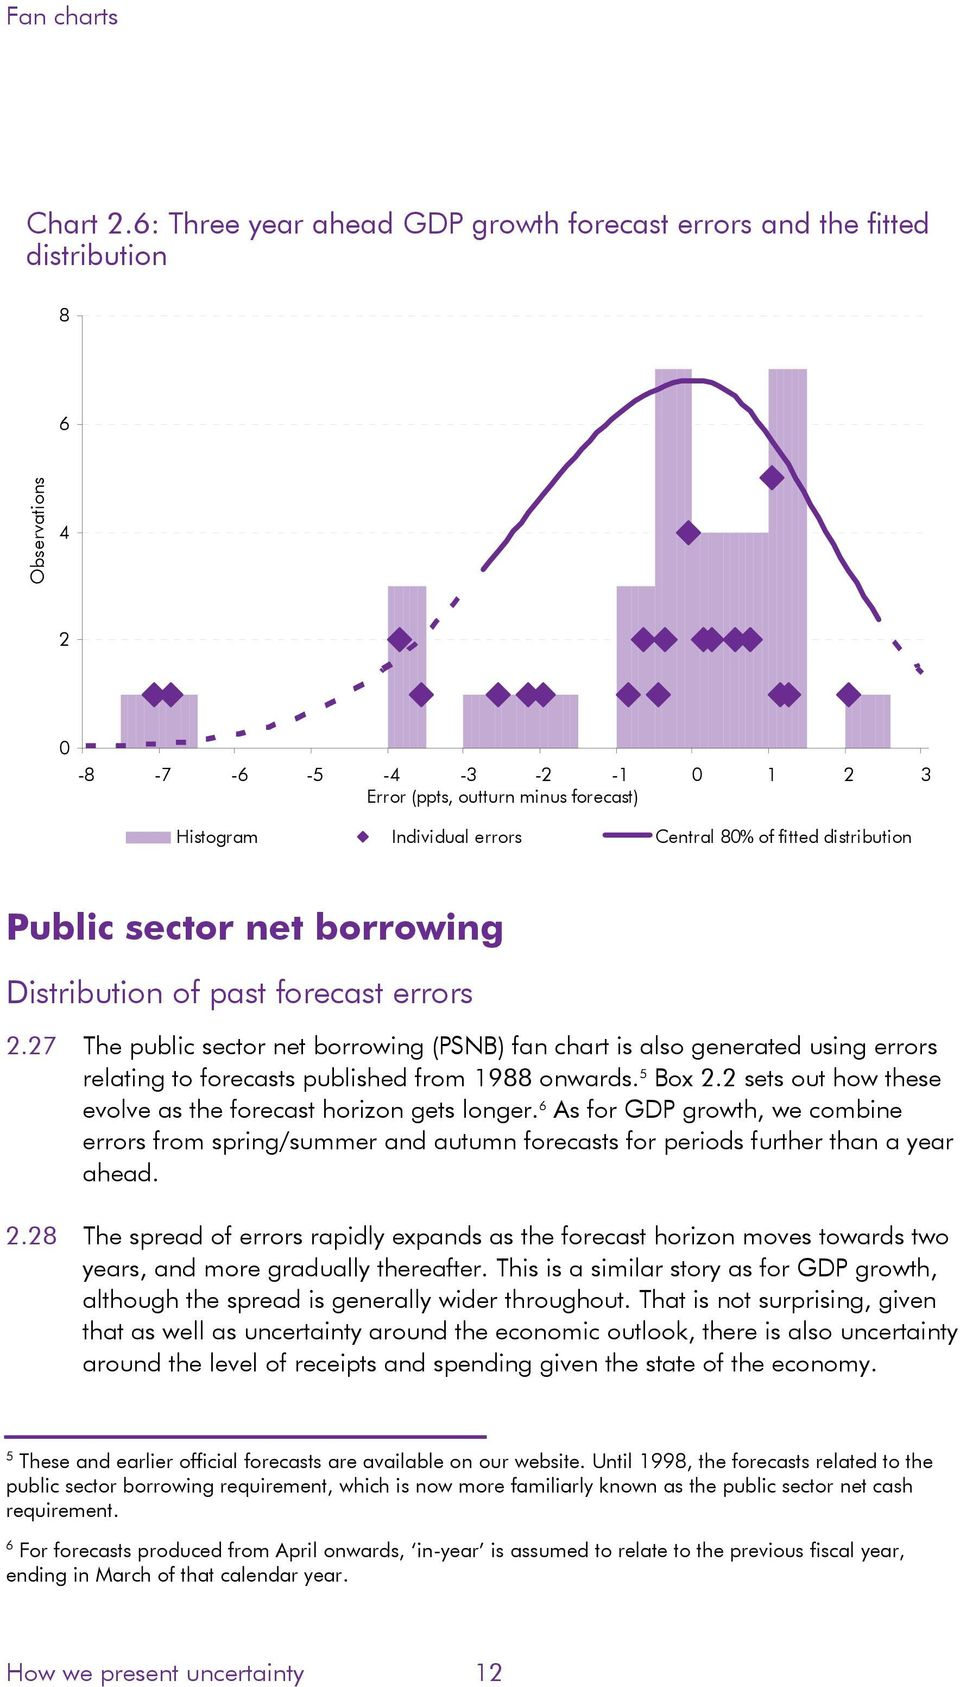 Public sector net borrowing Distribution of past forecast errors.7 The public sector net borrowing (PSNB) fan chart is also generated using errors relating to forecasts published from 19 onwards.